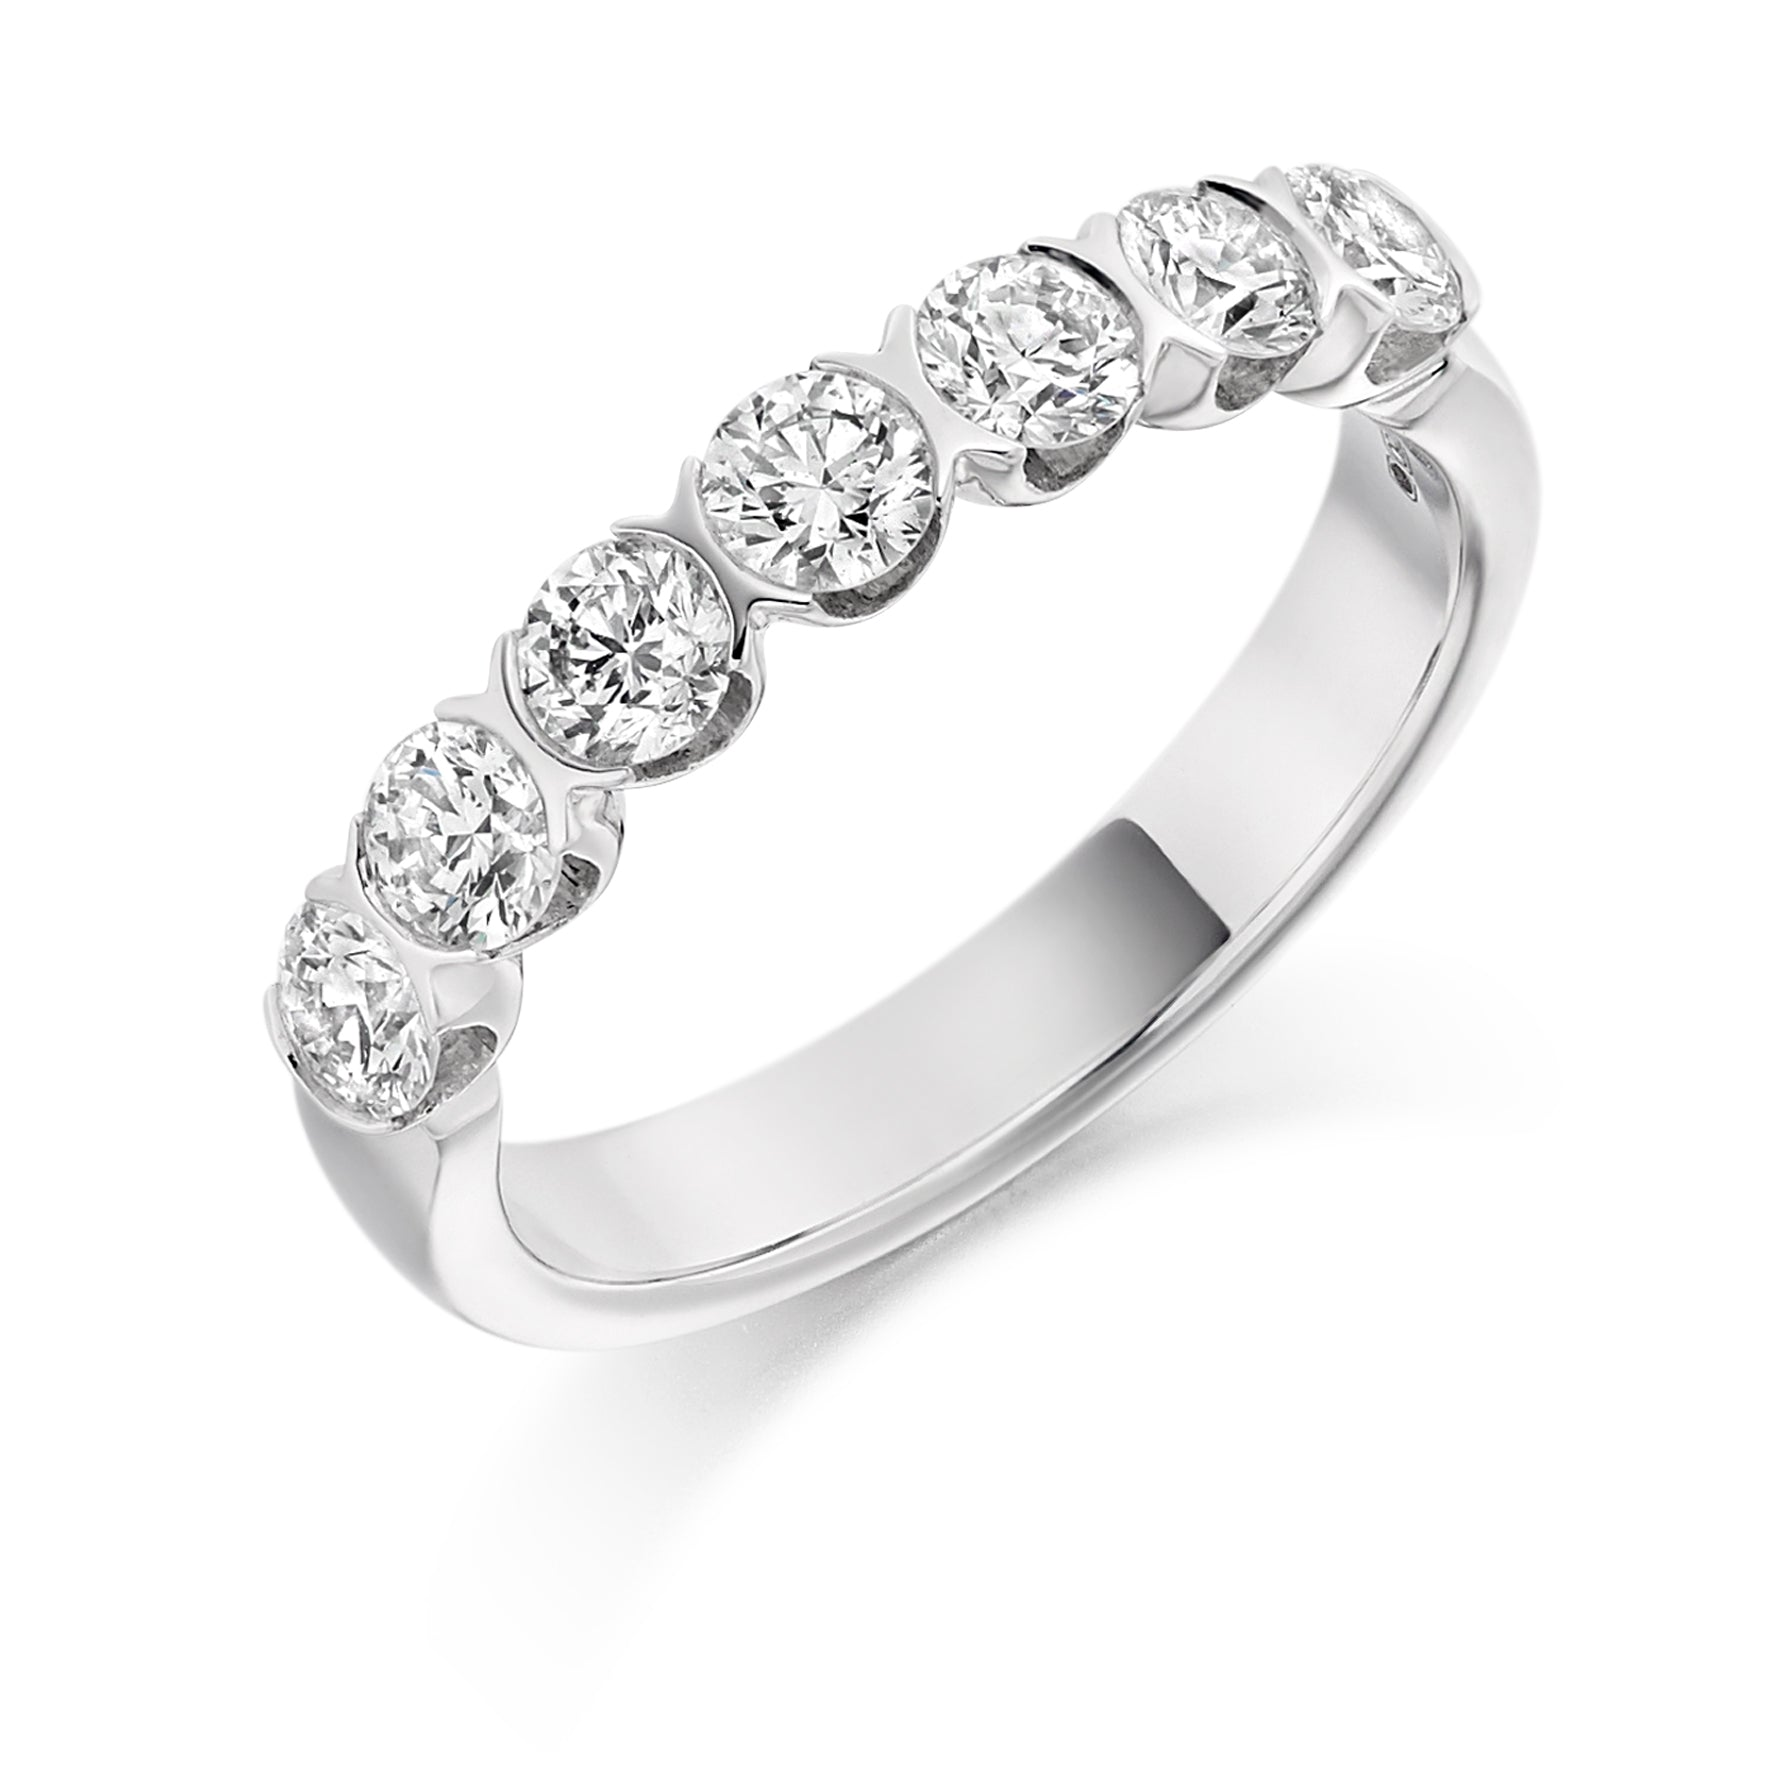 1ct Round Brilliant Cut Bar Set Diamond Wedding Ring - (Home Try-On)